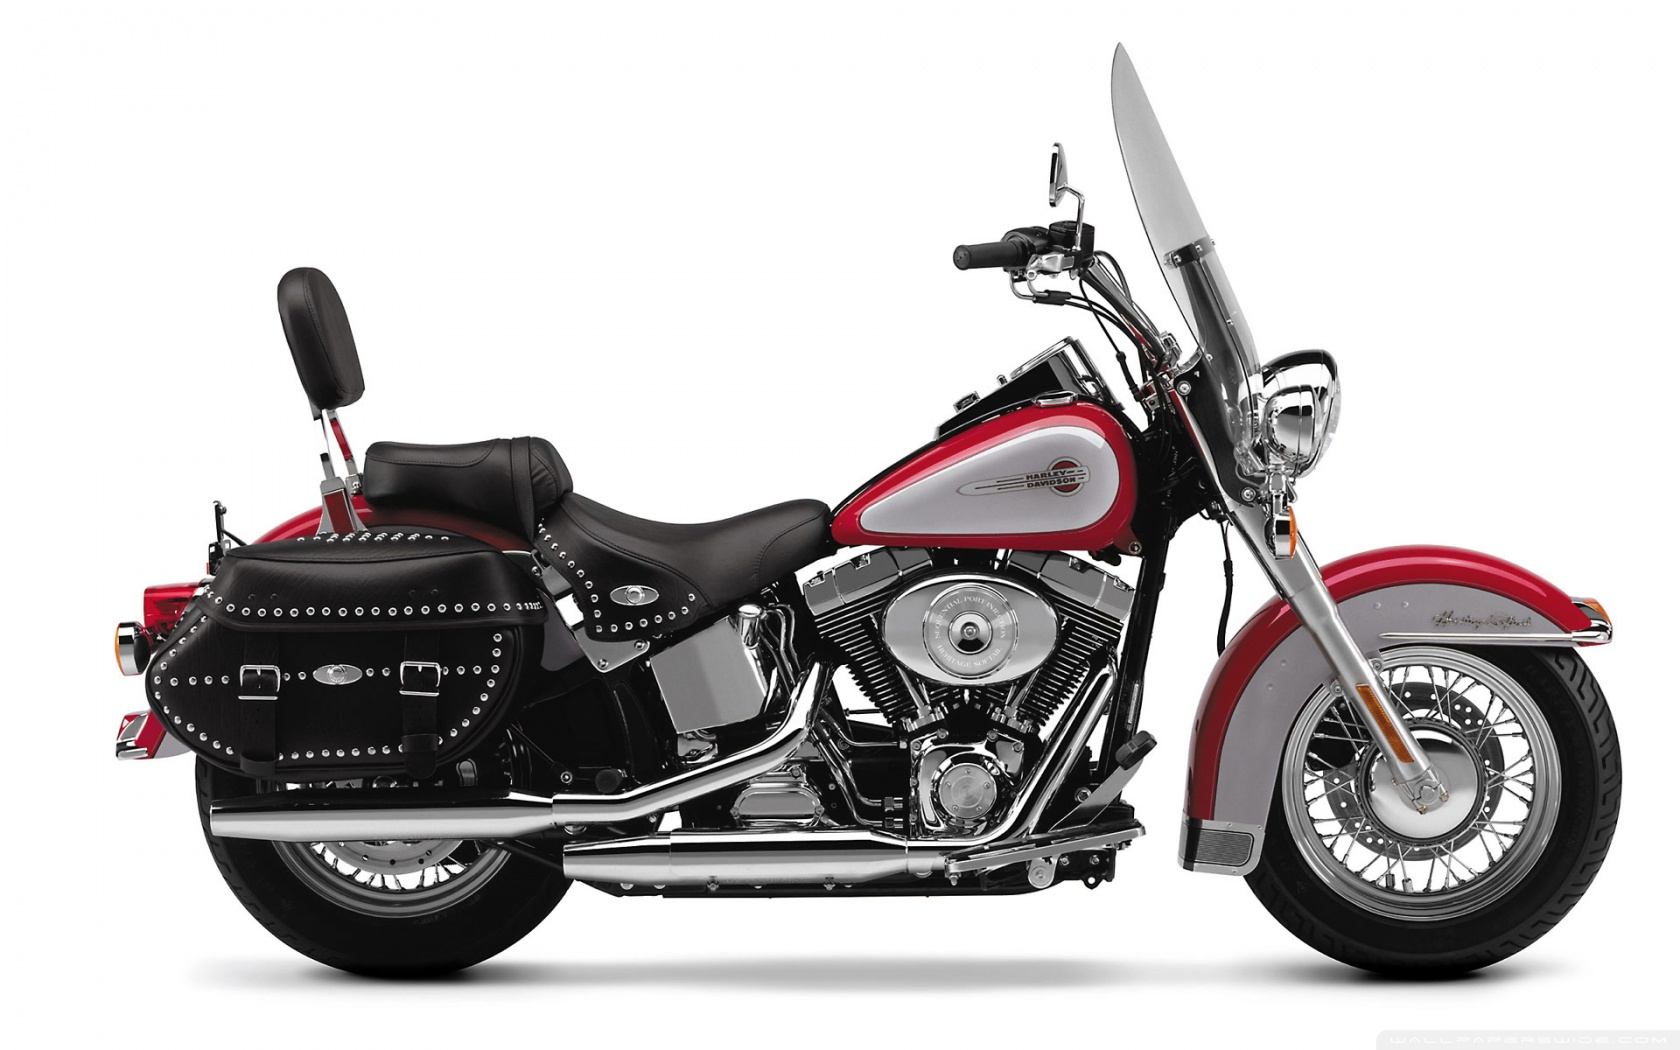 Harley Davidson Motorcycles Wallpaper Pictures 5 HD Wallpapers